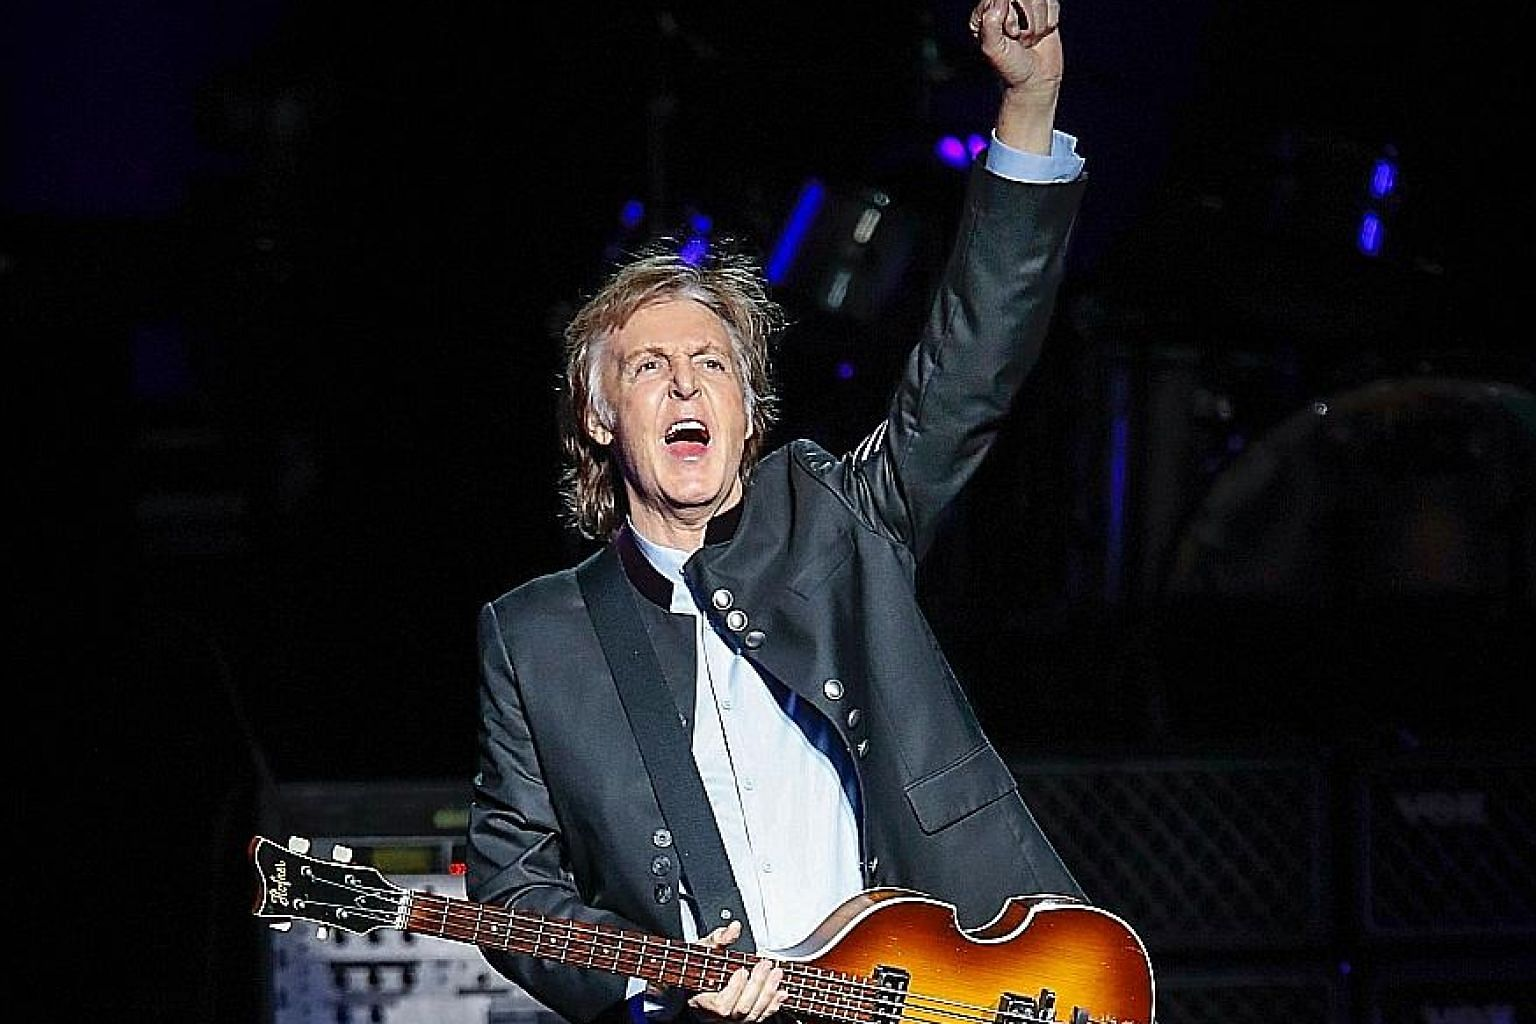 Paul McCartney performing at Tinley Park, Illinois, last month.